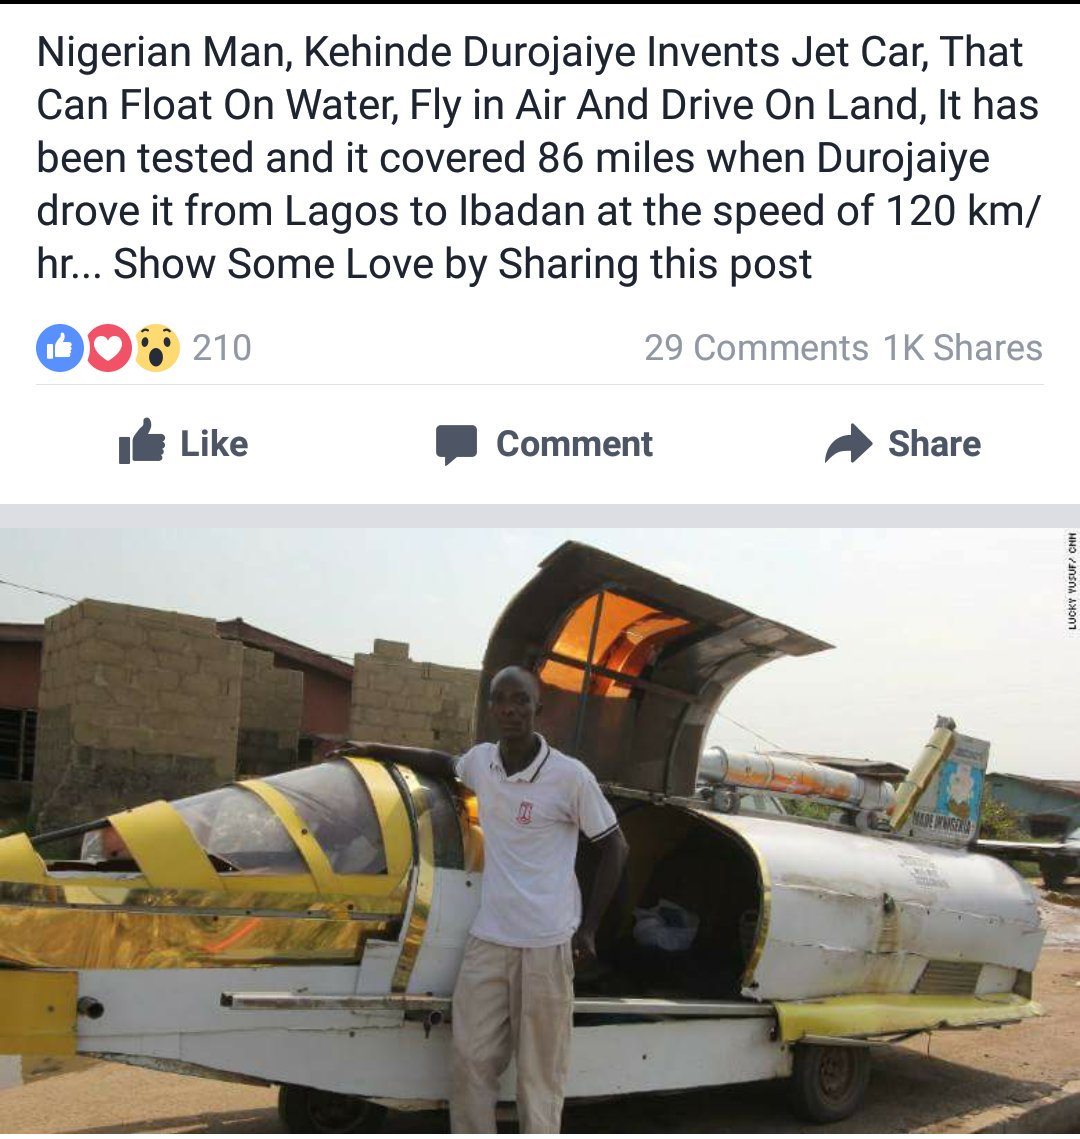 Image result for Nigerian Man, Kehinde Durojaiye Invents Jet Car, That Can Float On Water, Fly in Air And Drive On Land, It has been tested and it covered 86 miles when Durojaiye drove it from Lagos to Ibadan at the speed of 120 km/hr... Show Some Love by Sharing this post